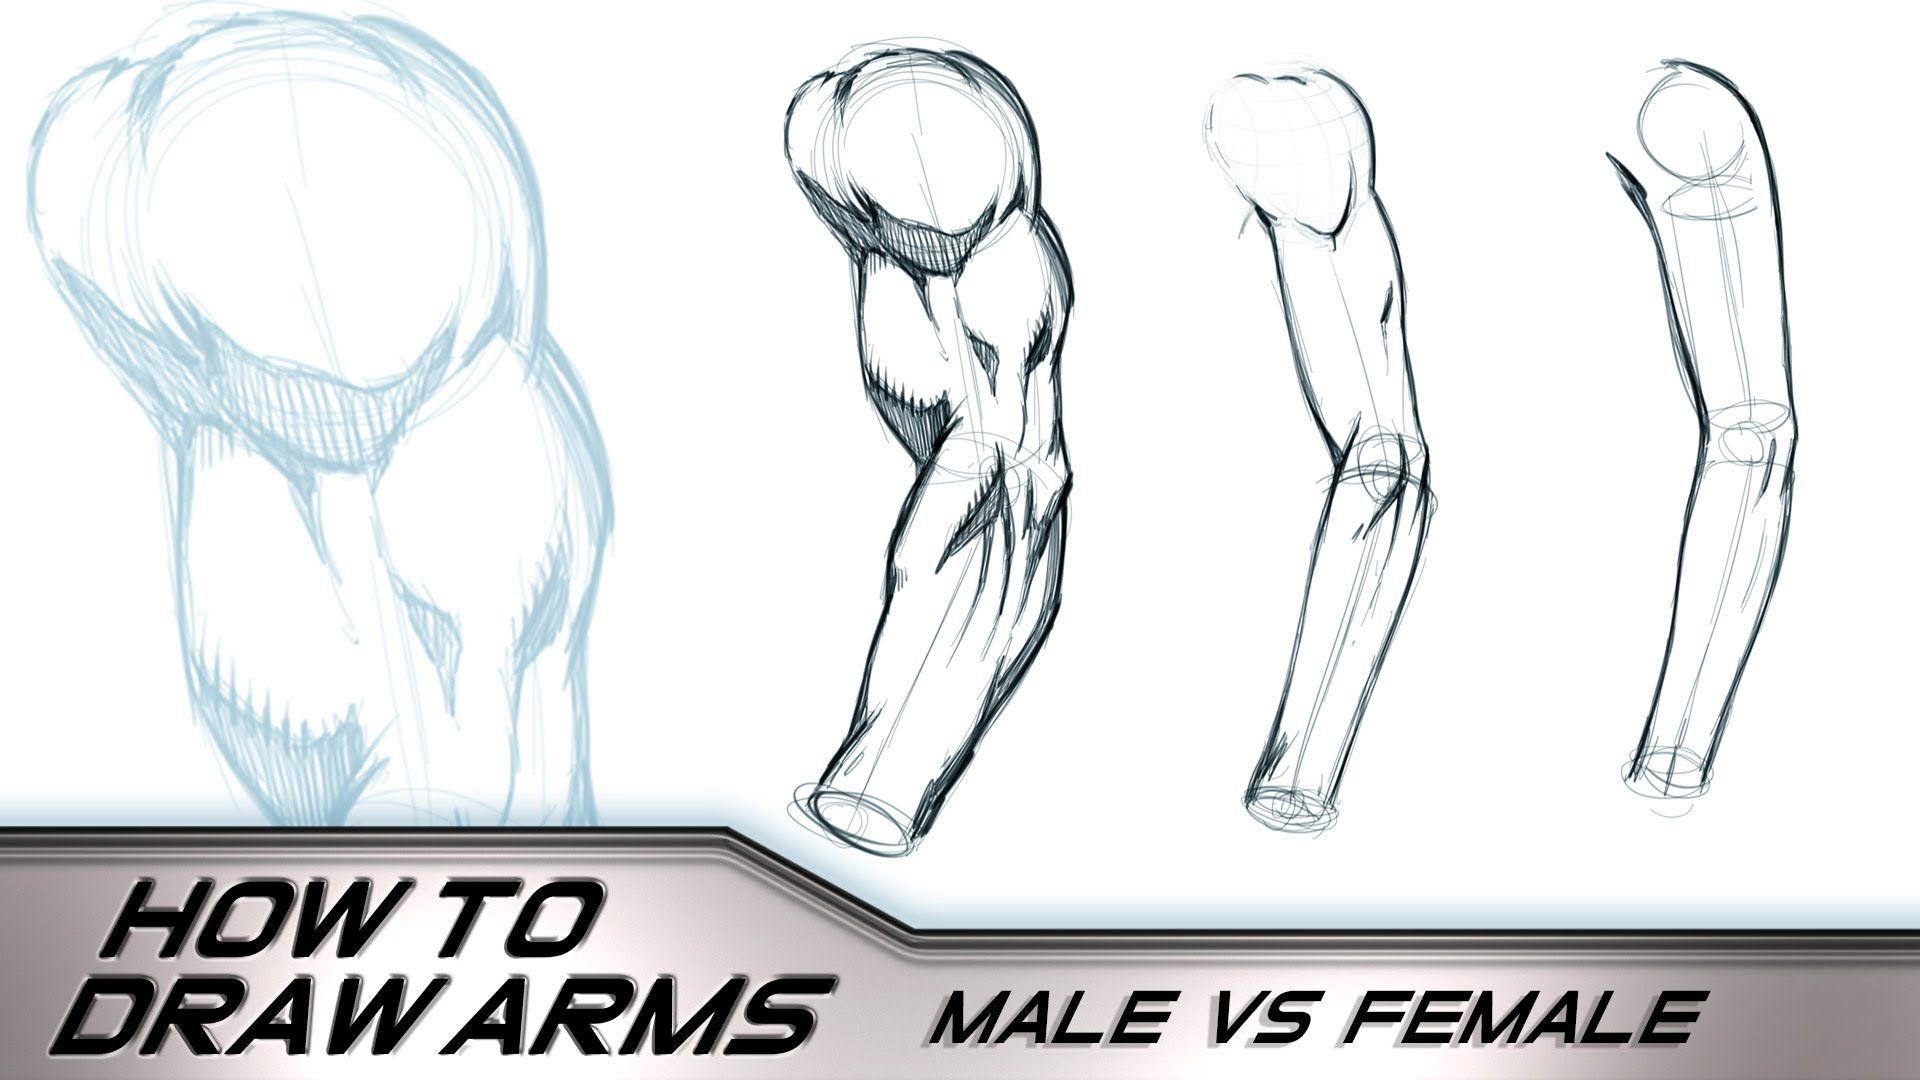 How To Draw Arms Male Vs Female Howto Draw Arms Male Female